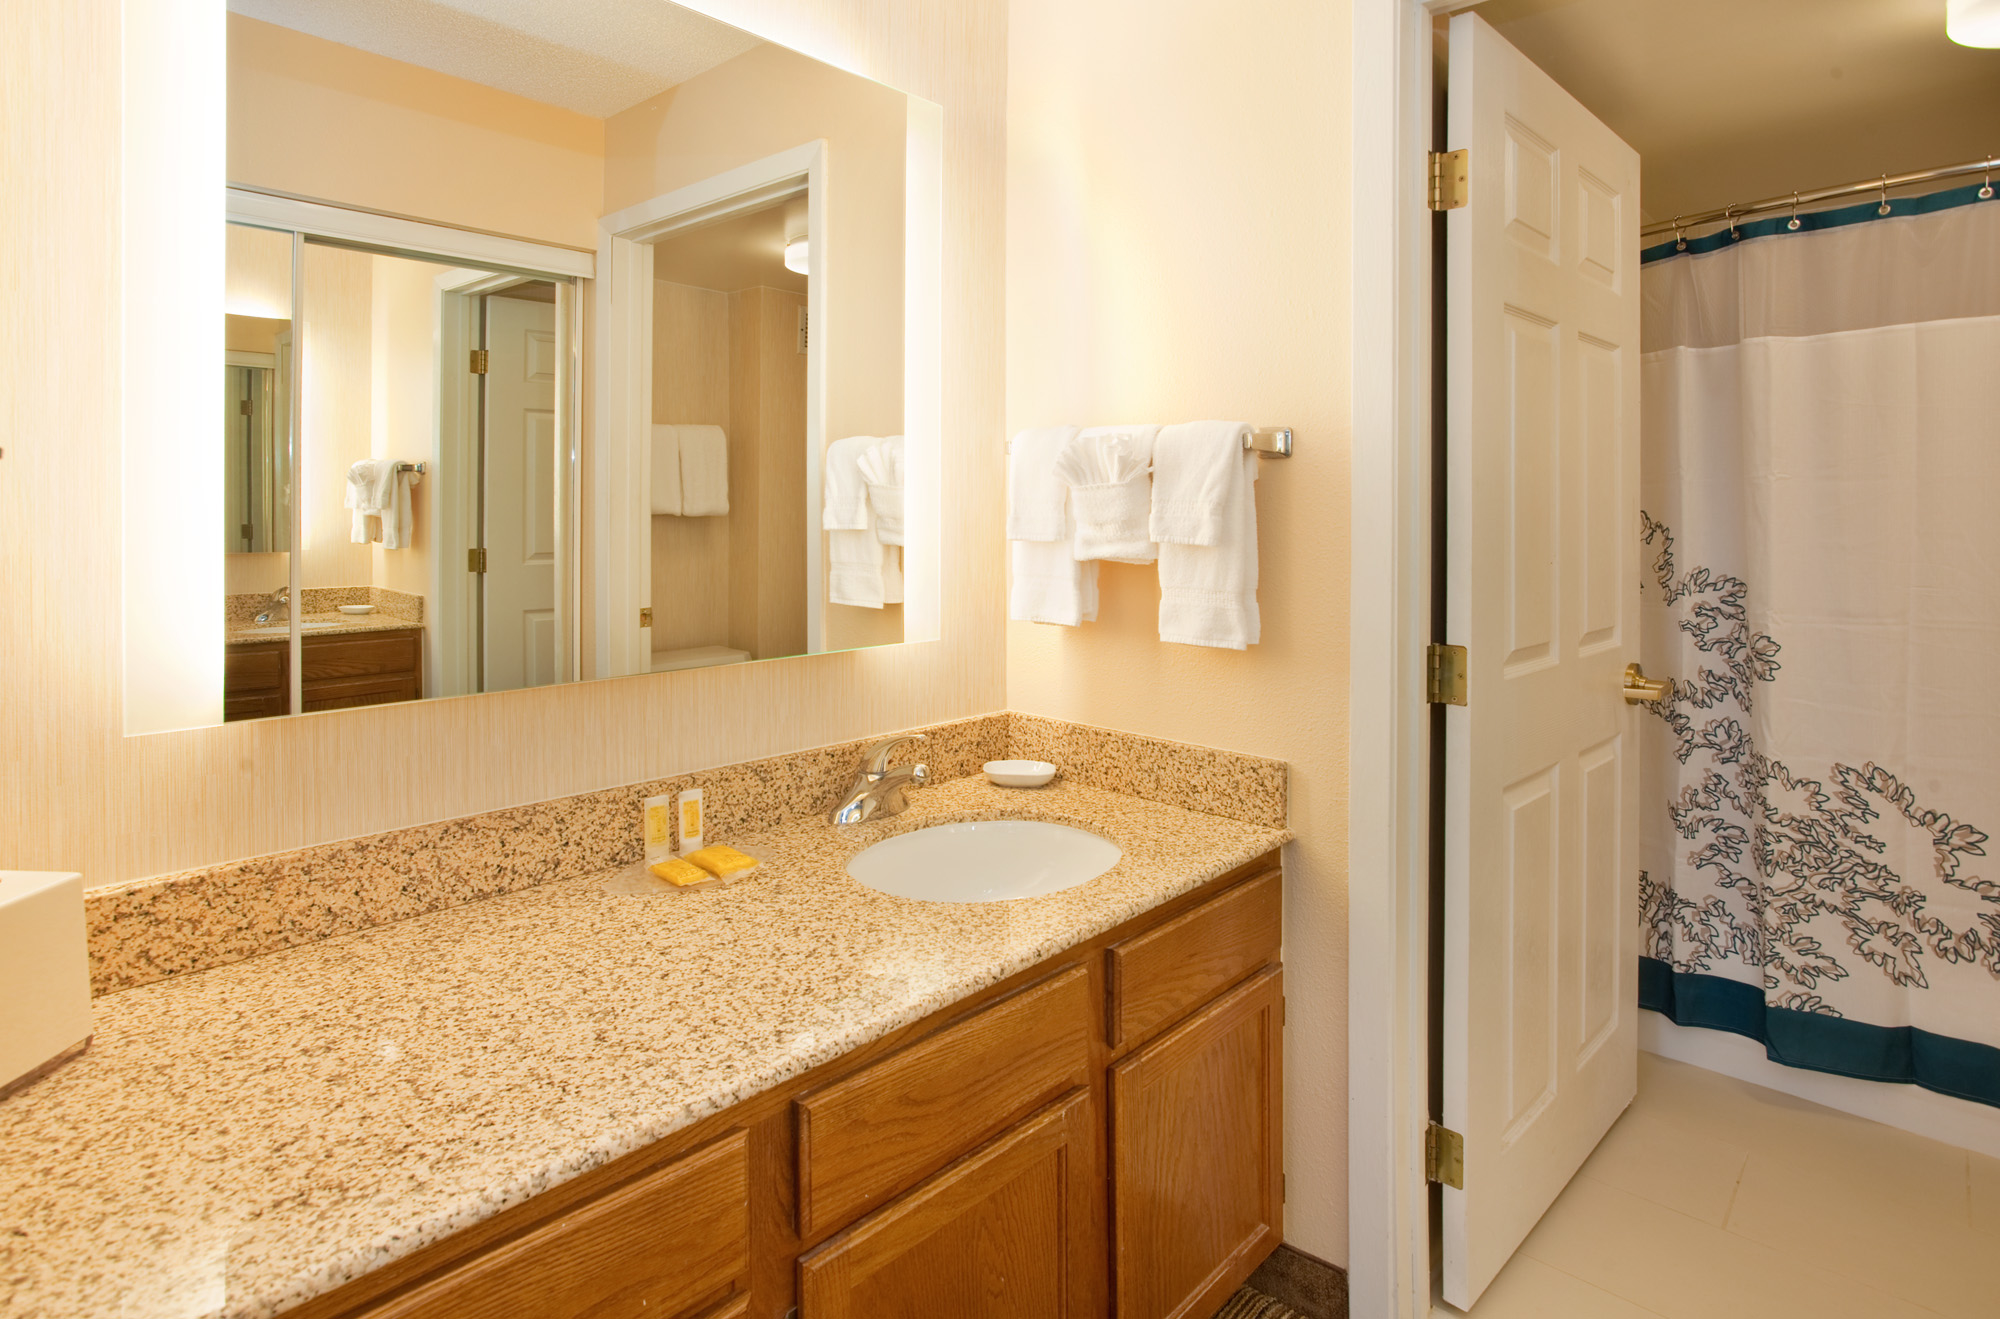 Residence Inn by Marriott Houston Sugar Land image 7